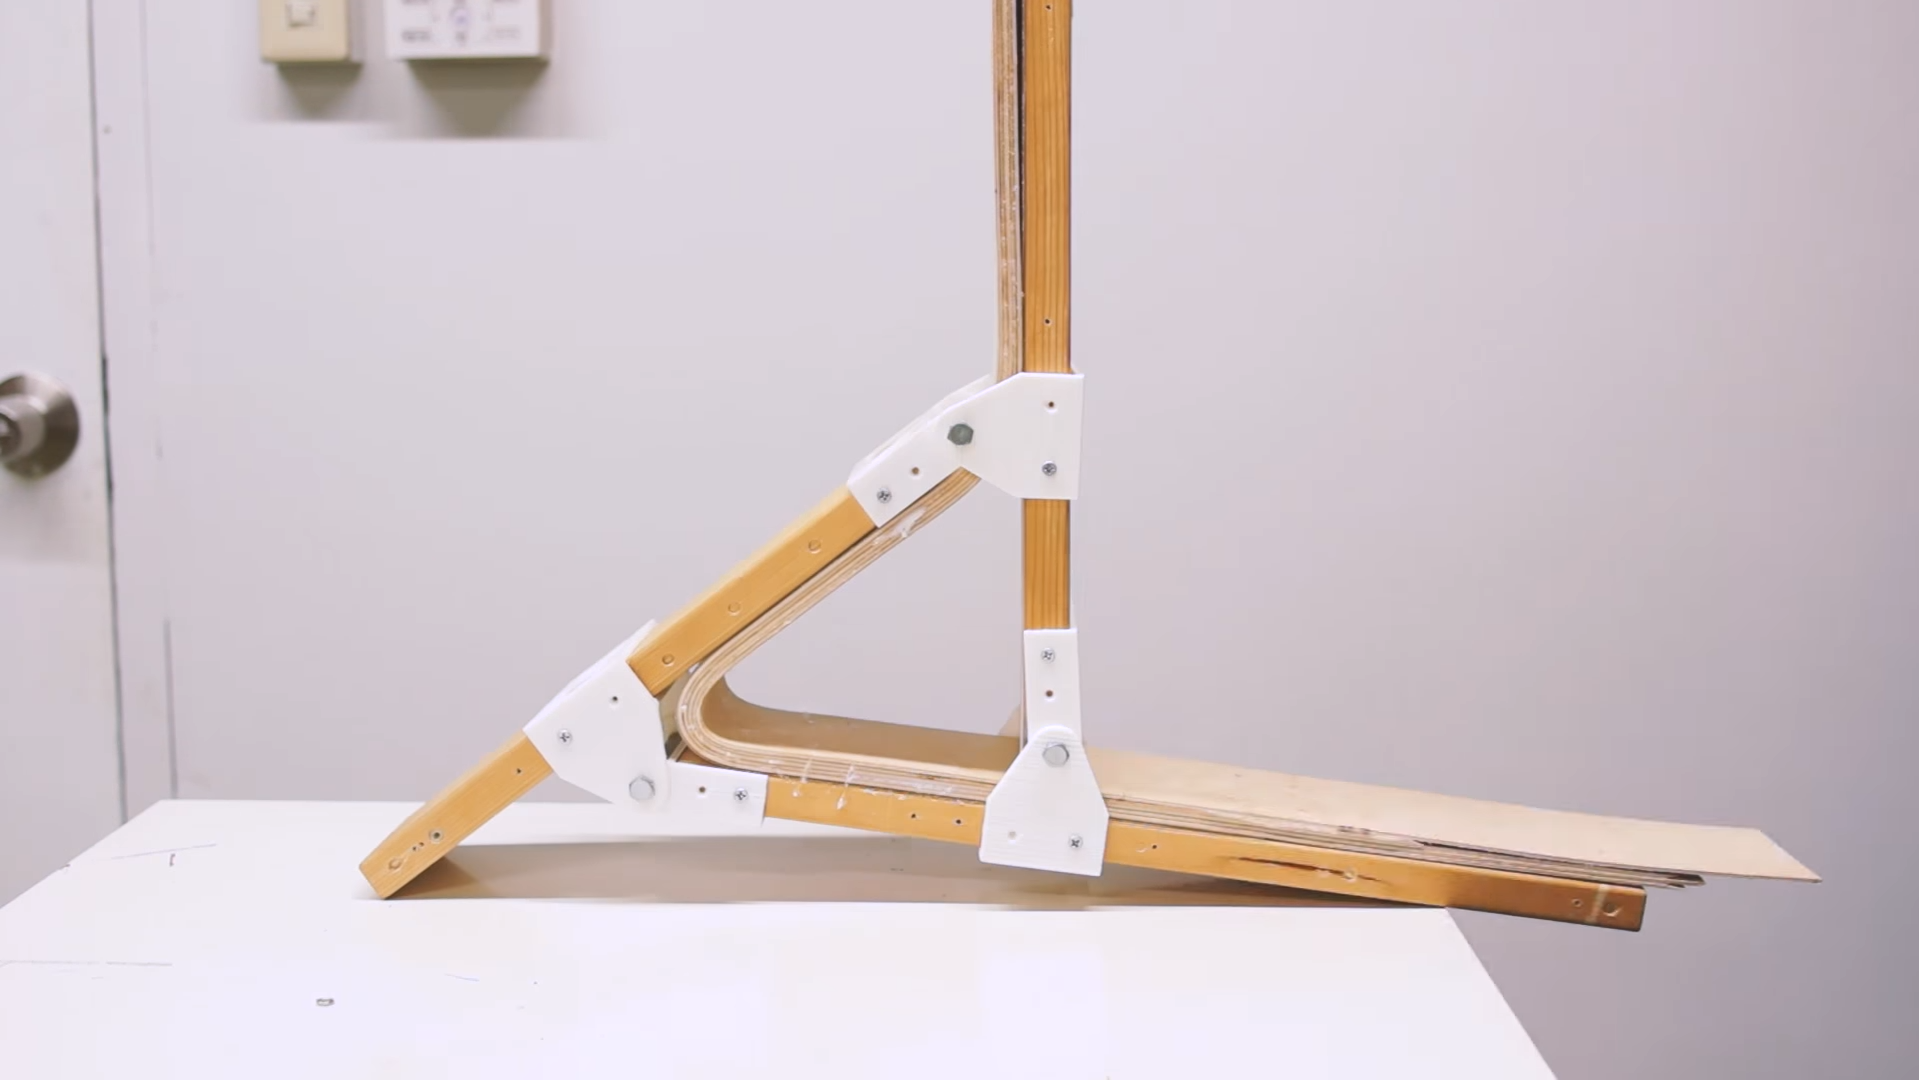 Kyoto Student 3D Prints a Plywood Bending Jig | All3DP